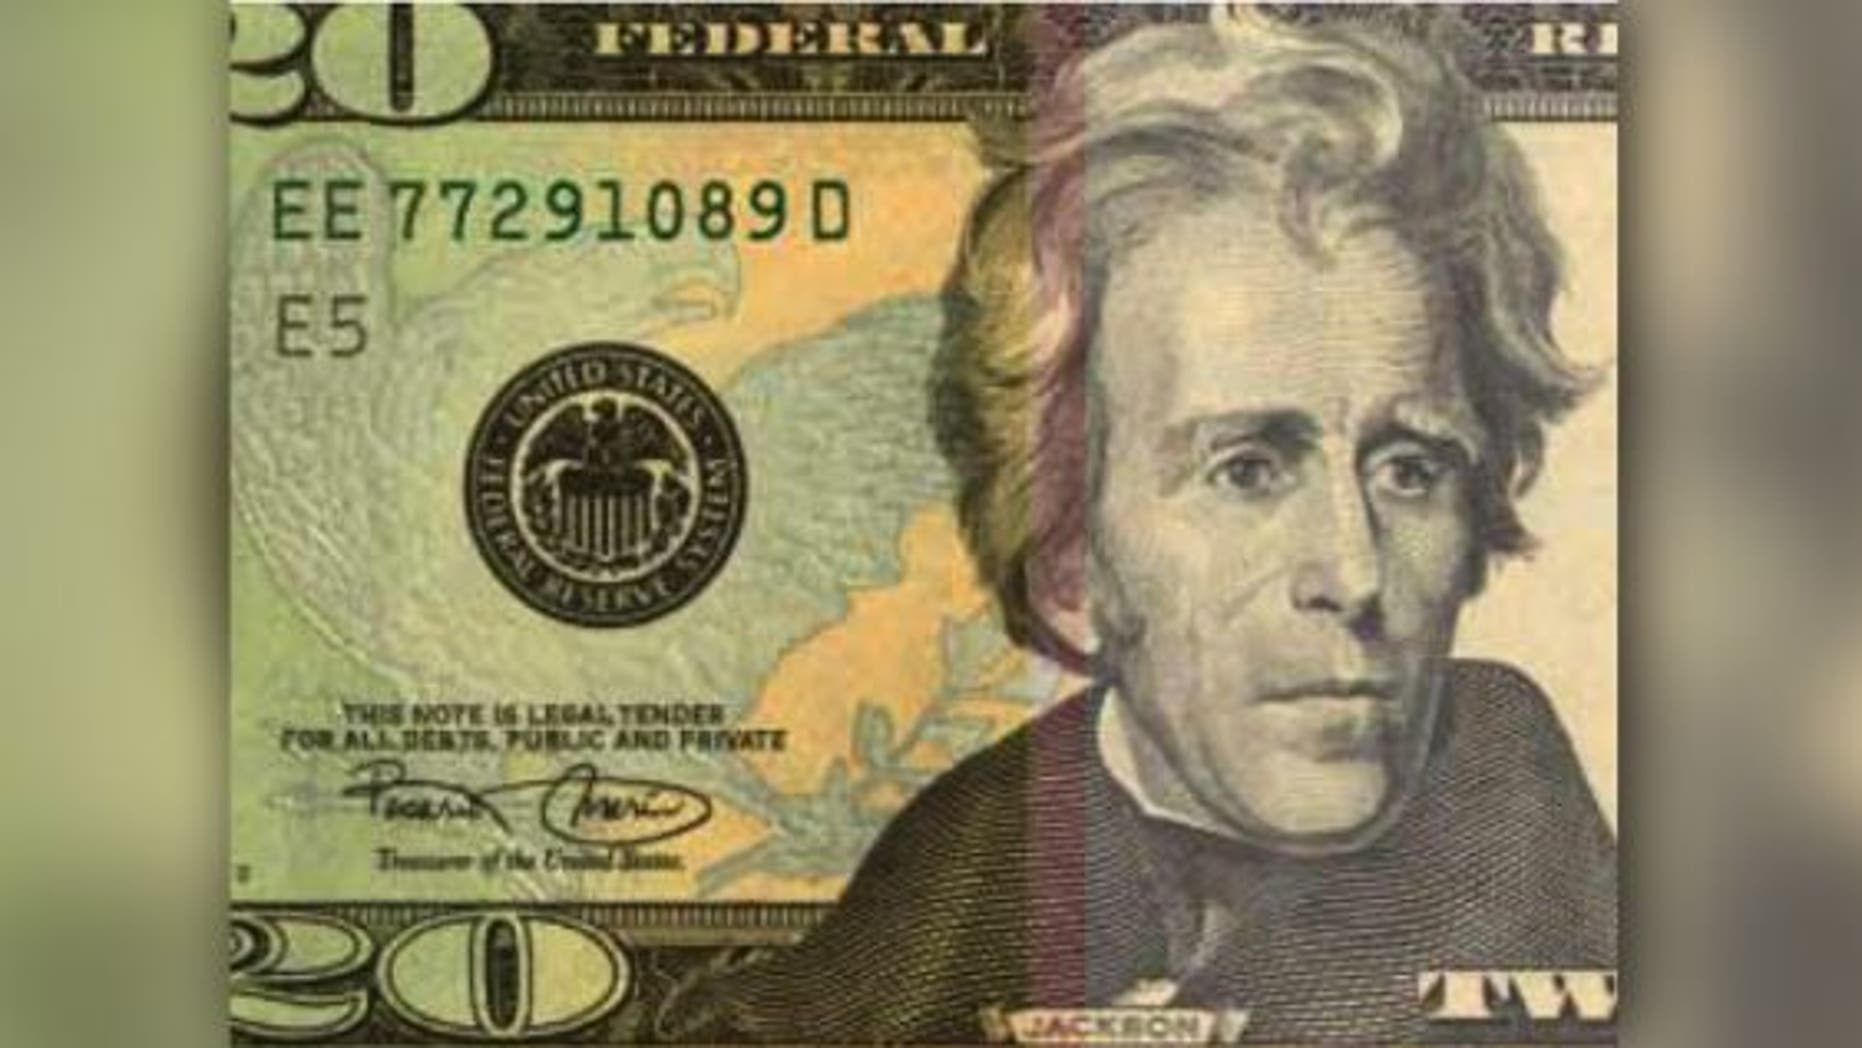 This Group Wants To Banish Andrew Jackson From The 20 Bill